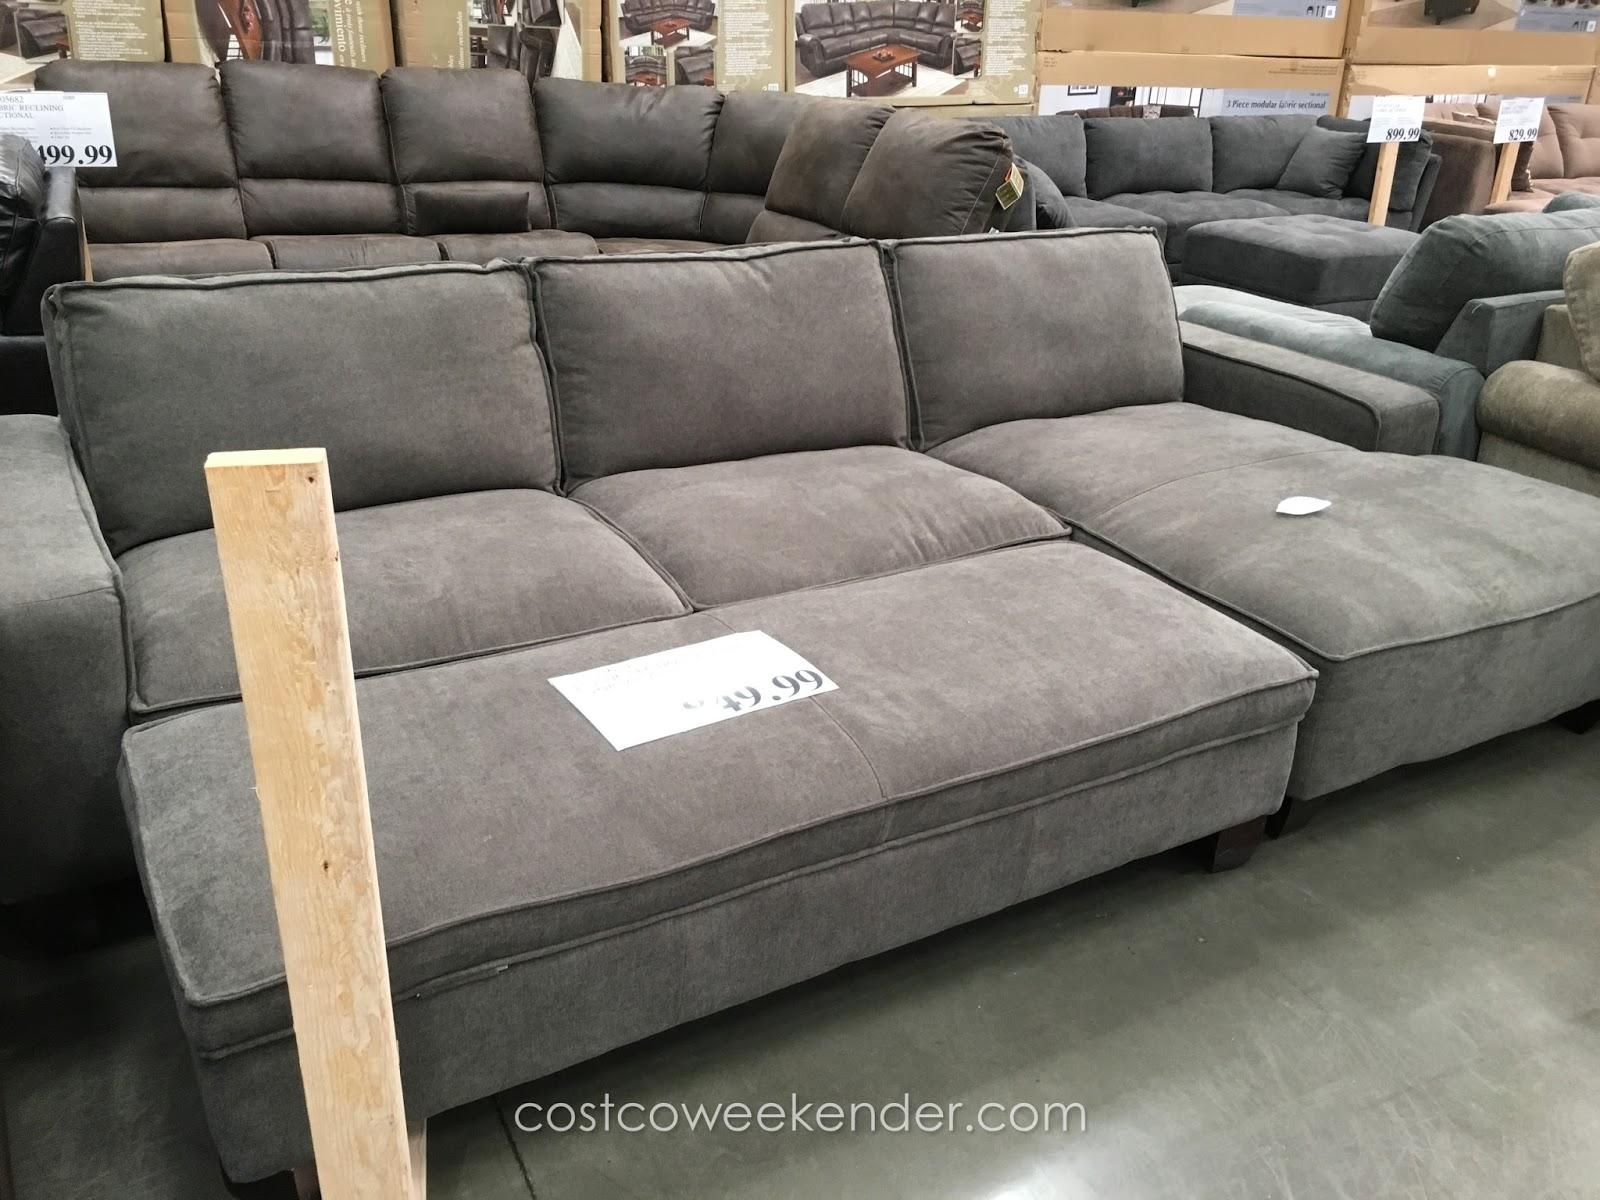 Sleeper Sectional Sofa With Storage Chaise | Tehranmix Decoration In Sectional Sofa With Storage (View 7 of 20)